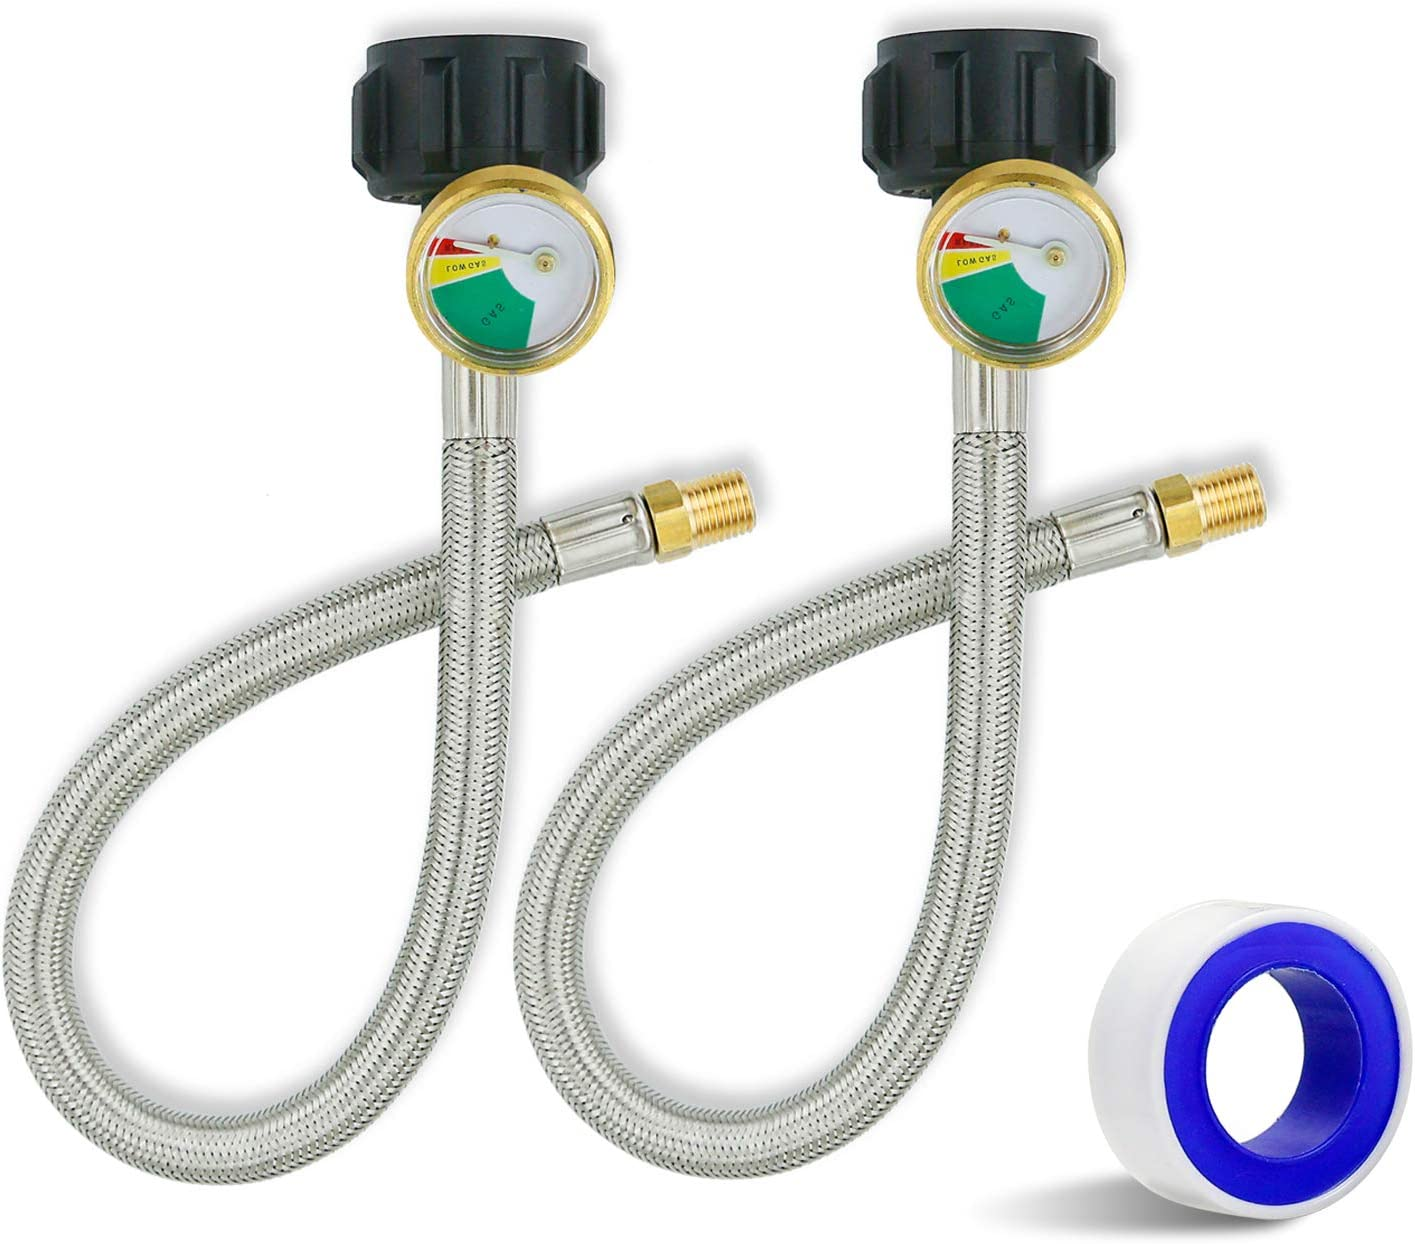 Uniflasy 1 4 inch NPT RV Propane 15 Pigtail Inch El Paso Ranking TOP7 Mall with Gauge Hose